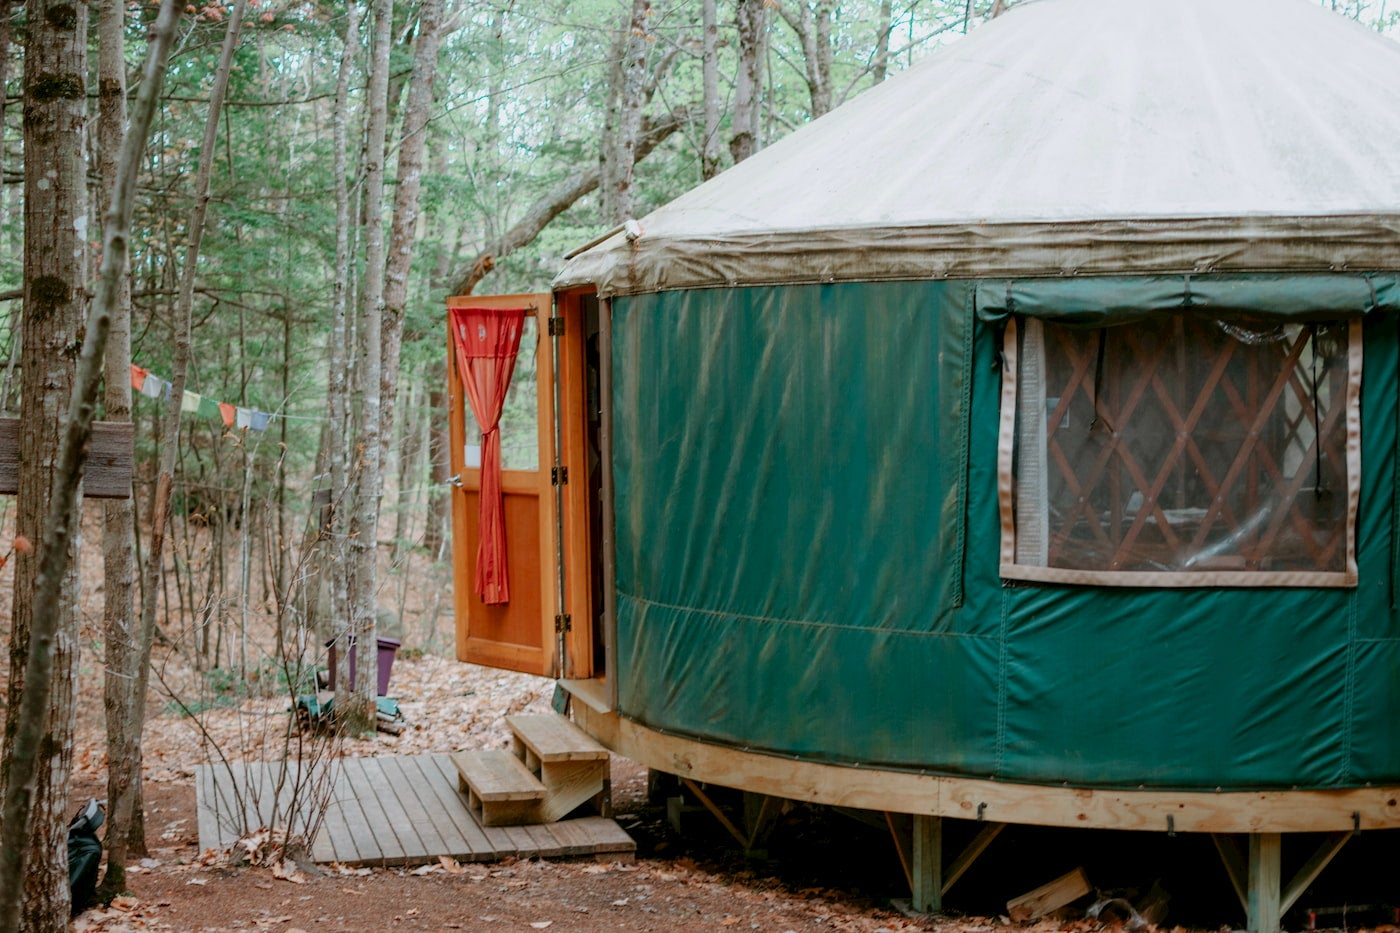 Green yurt with wooden steps up to it.